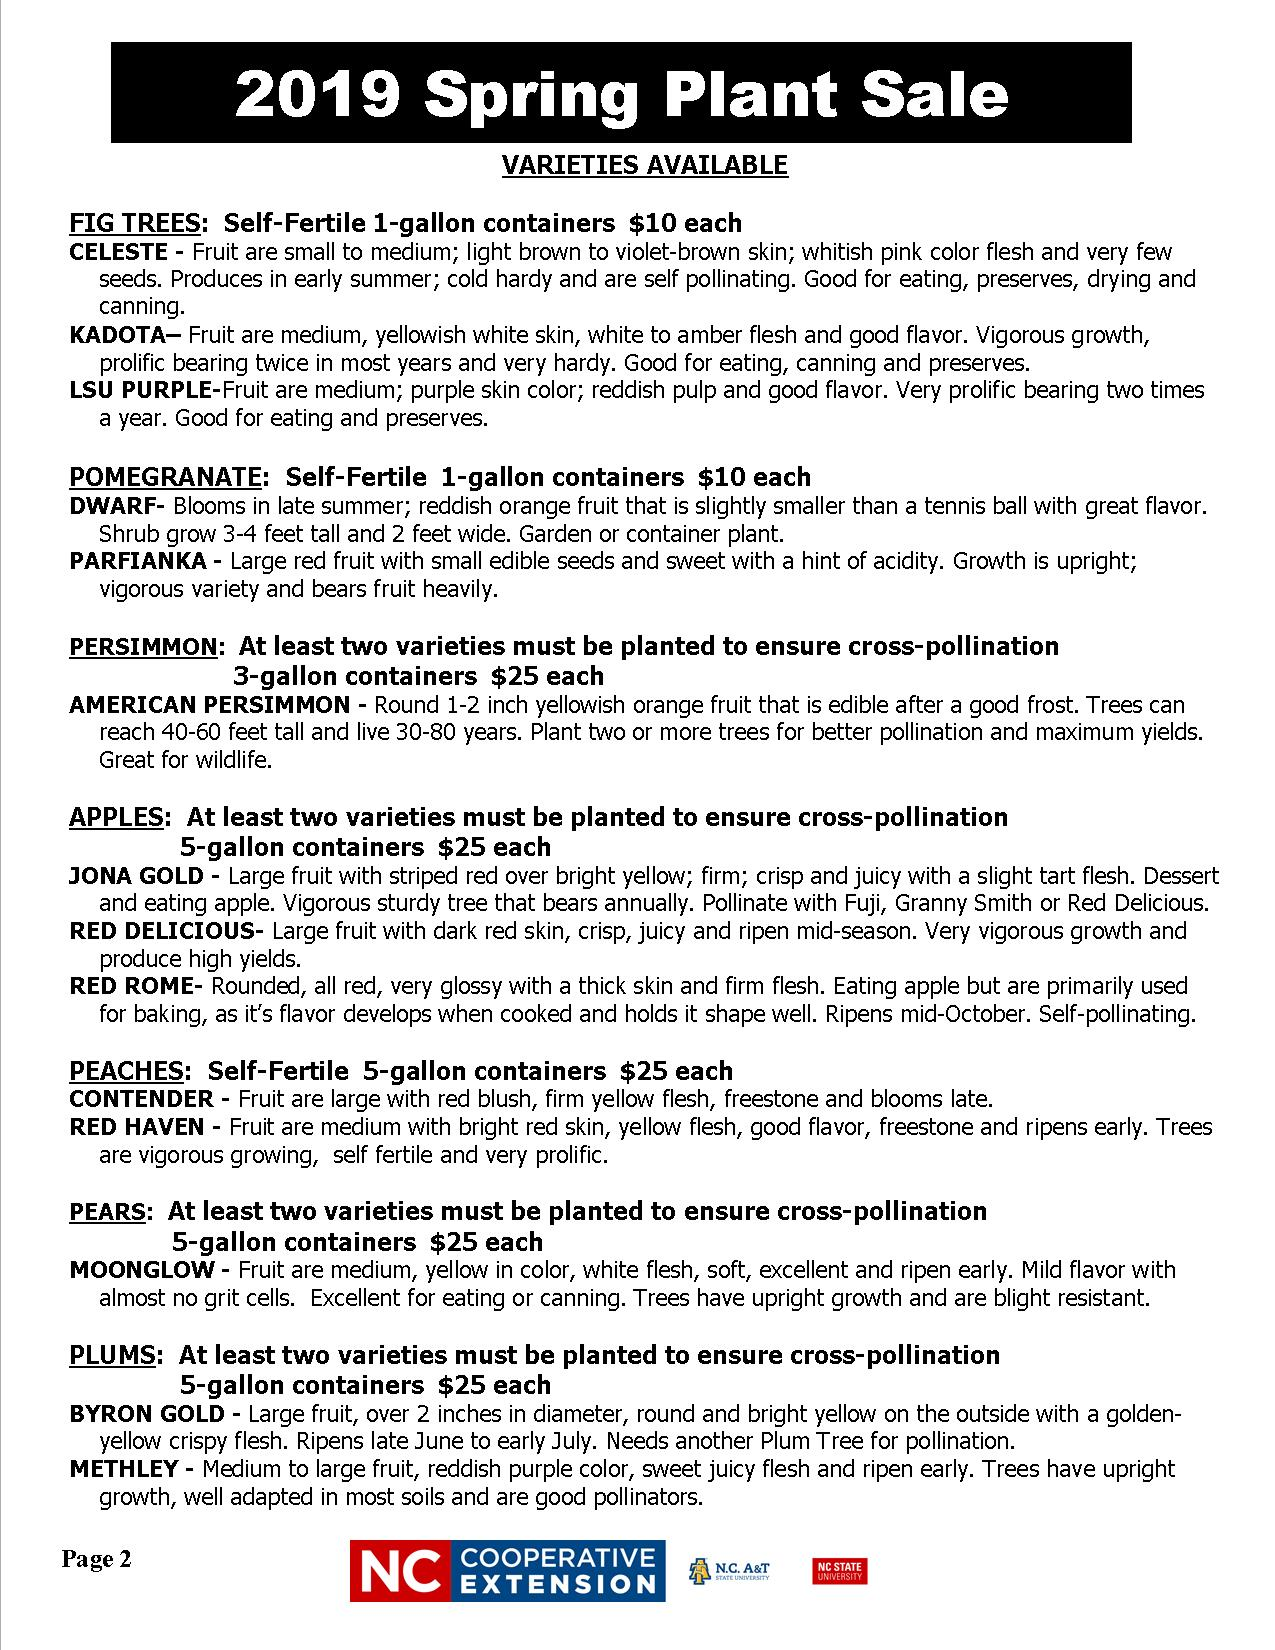 Spring Plant Sale flyer image page 2